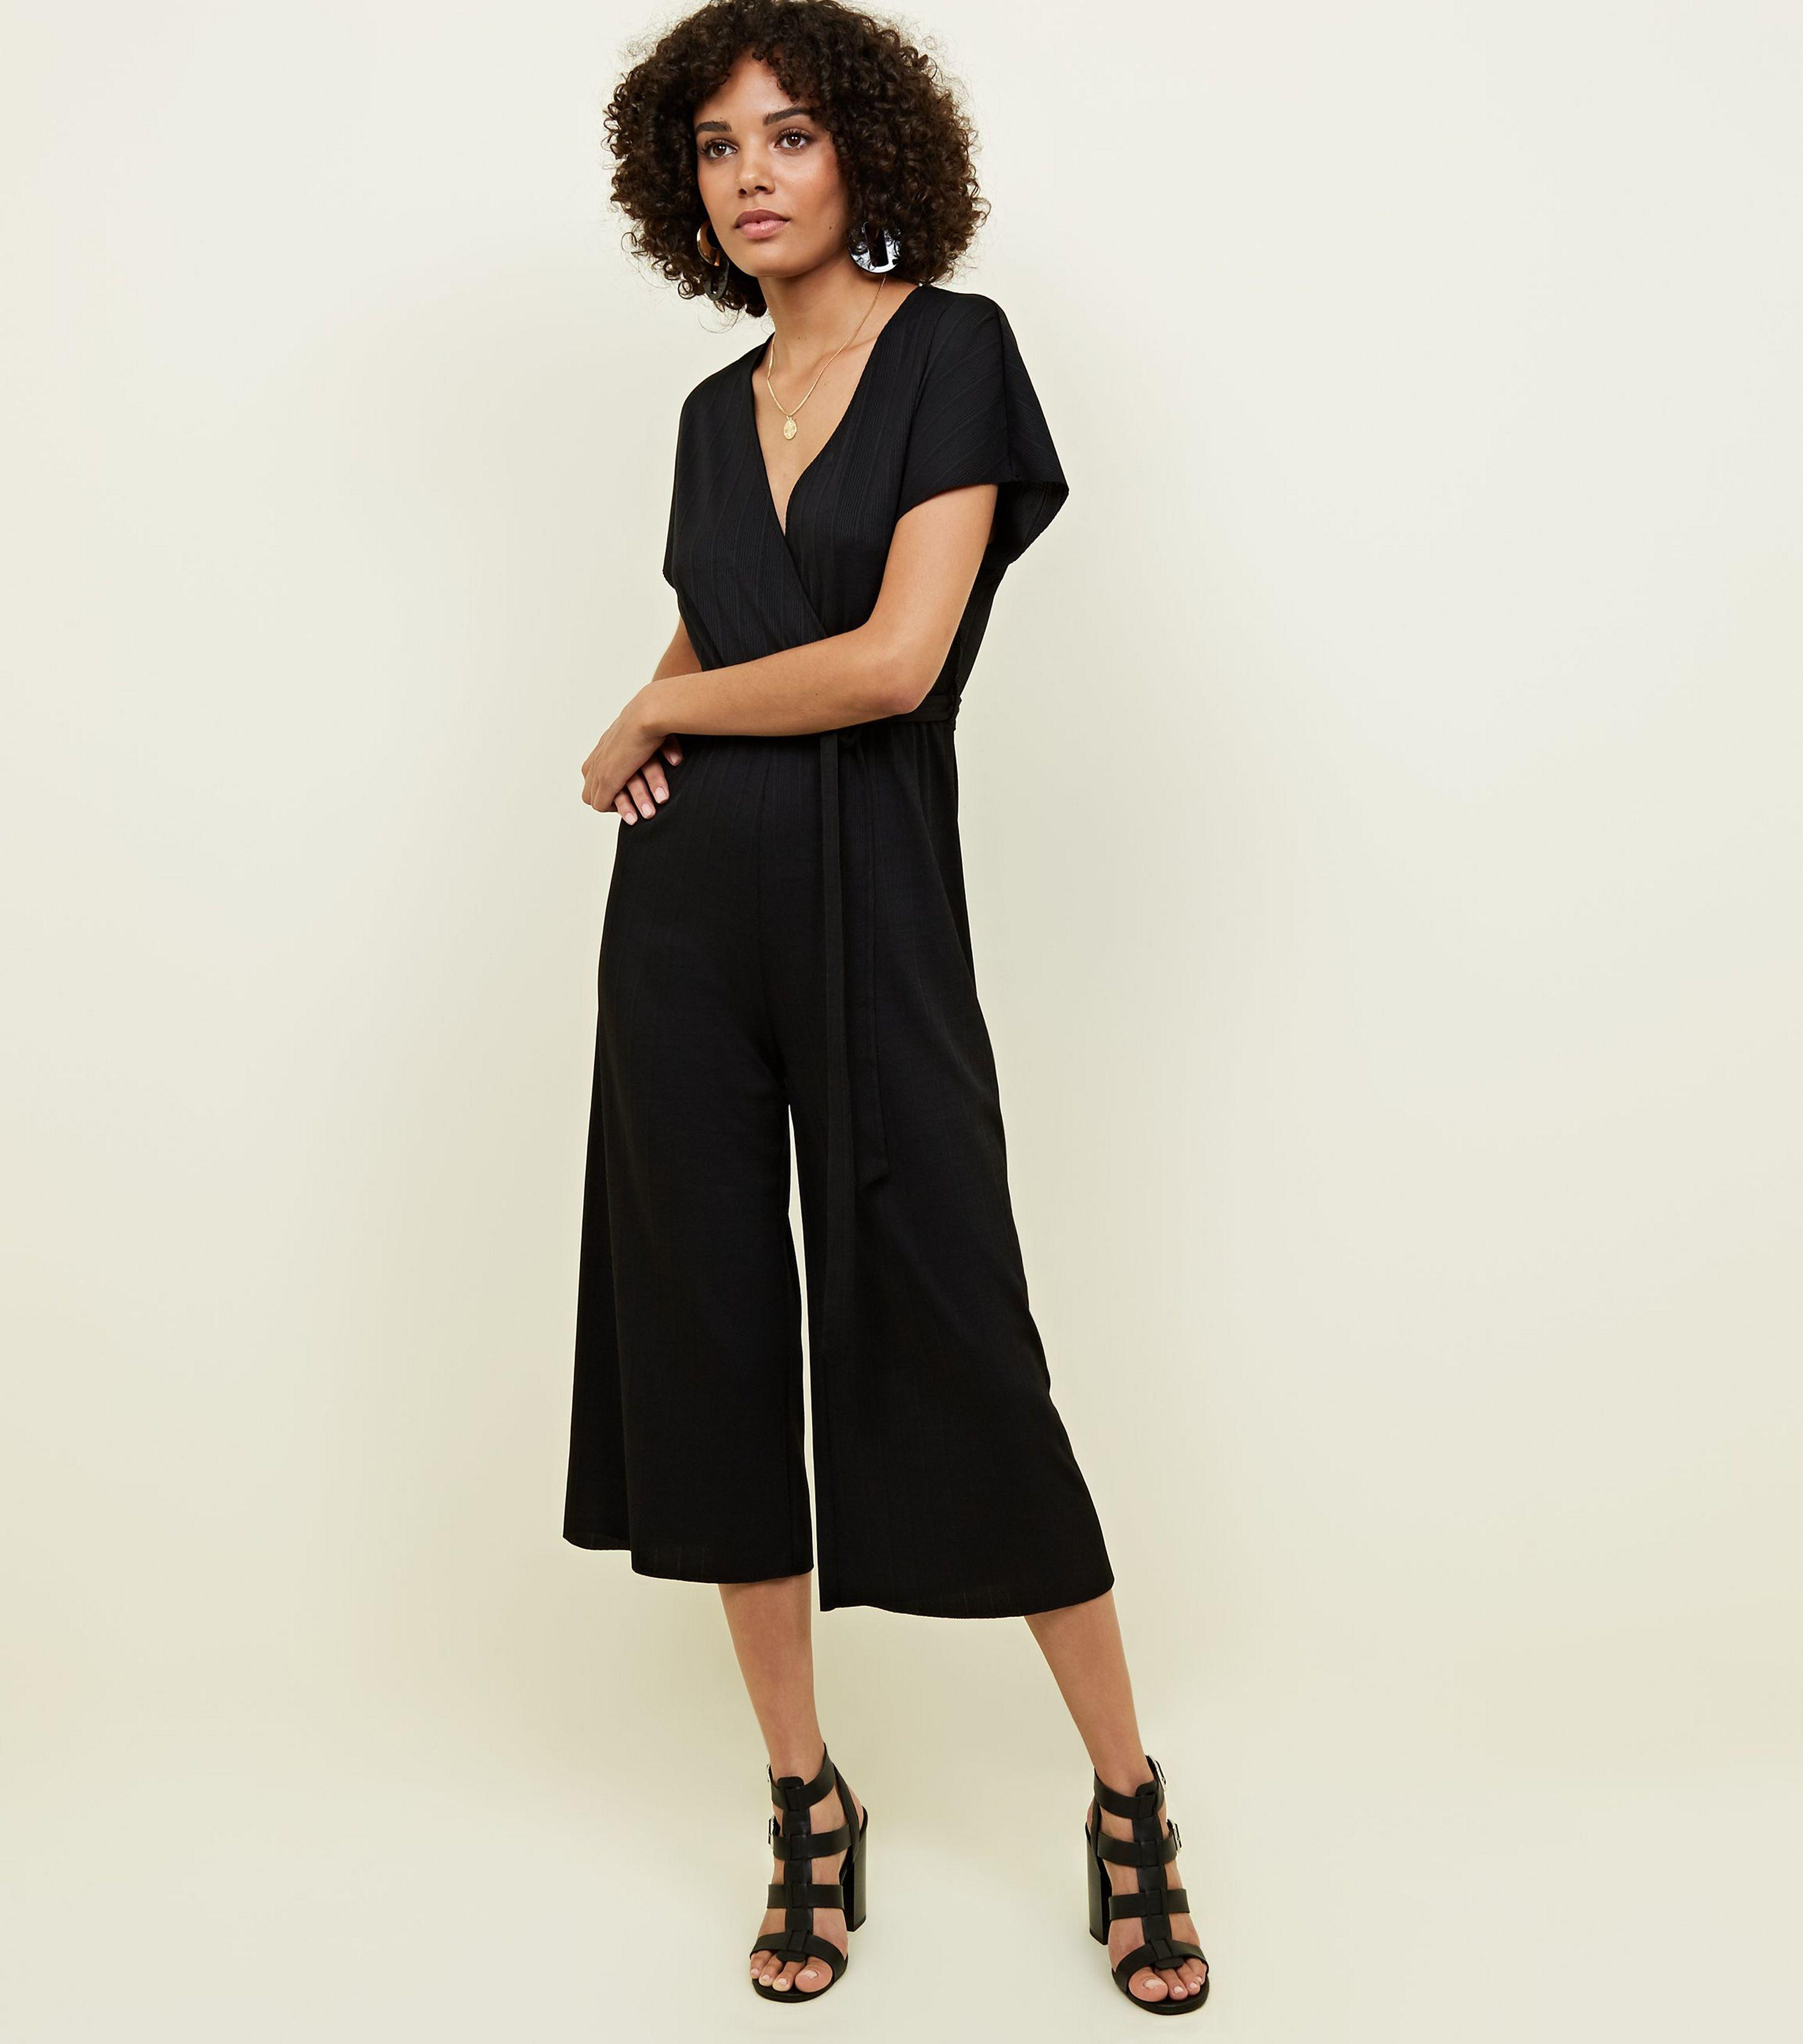 fc604e4a9952 New Look Black Wrap Front Ribbed Jersey Jumpsuit in Black - Lyst